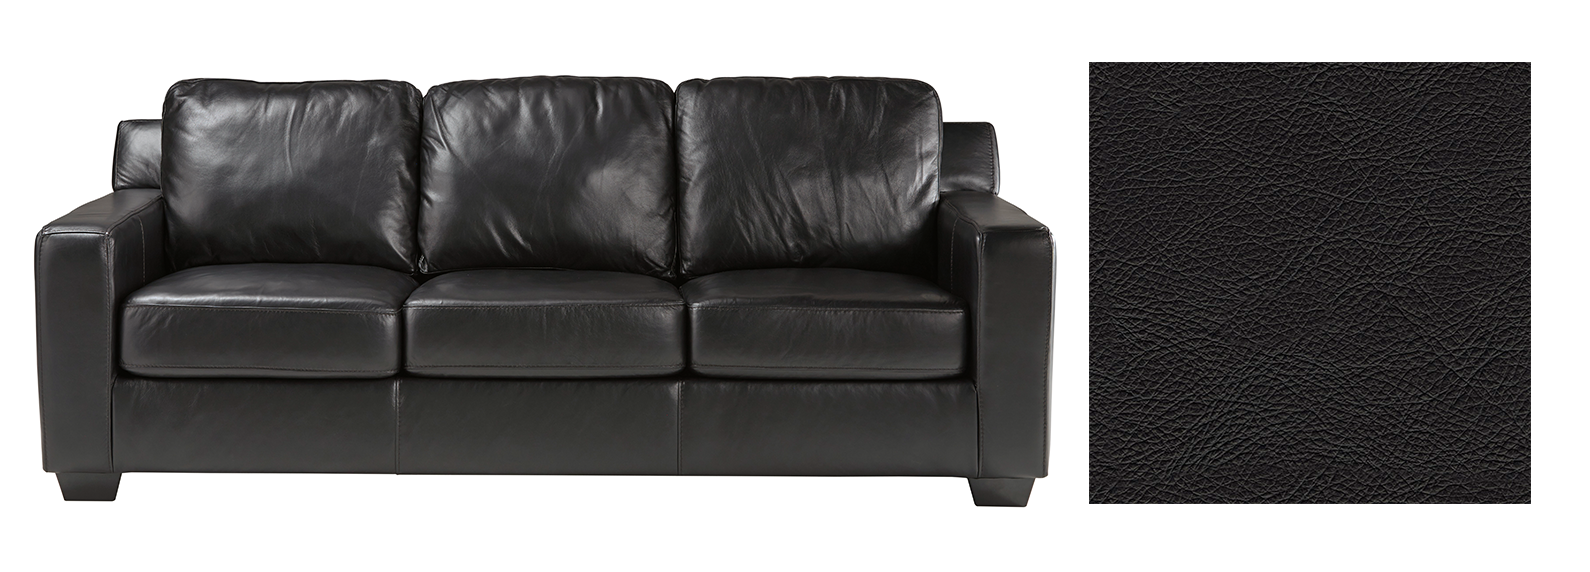 Black leather sofa with a fabric splotch next to it.